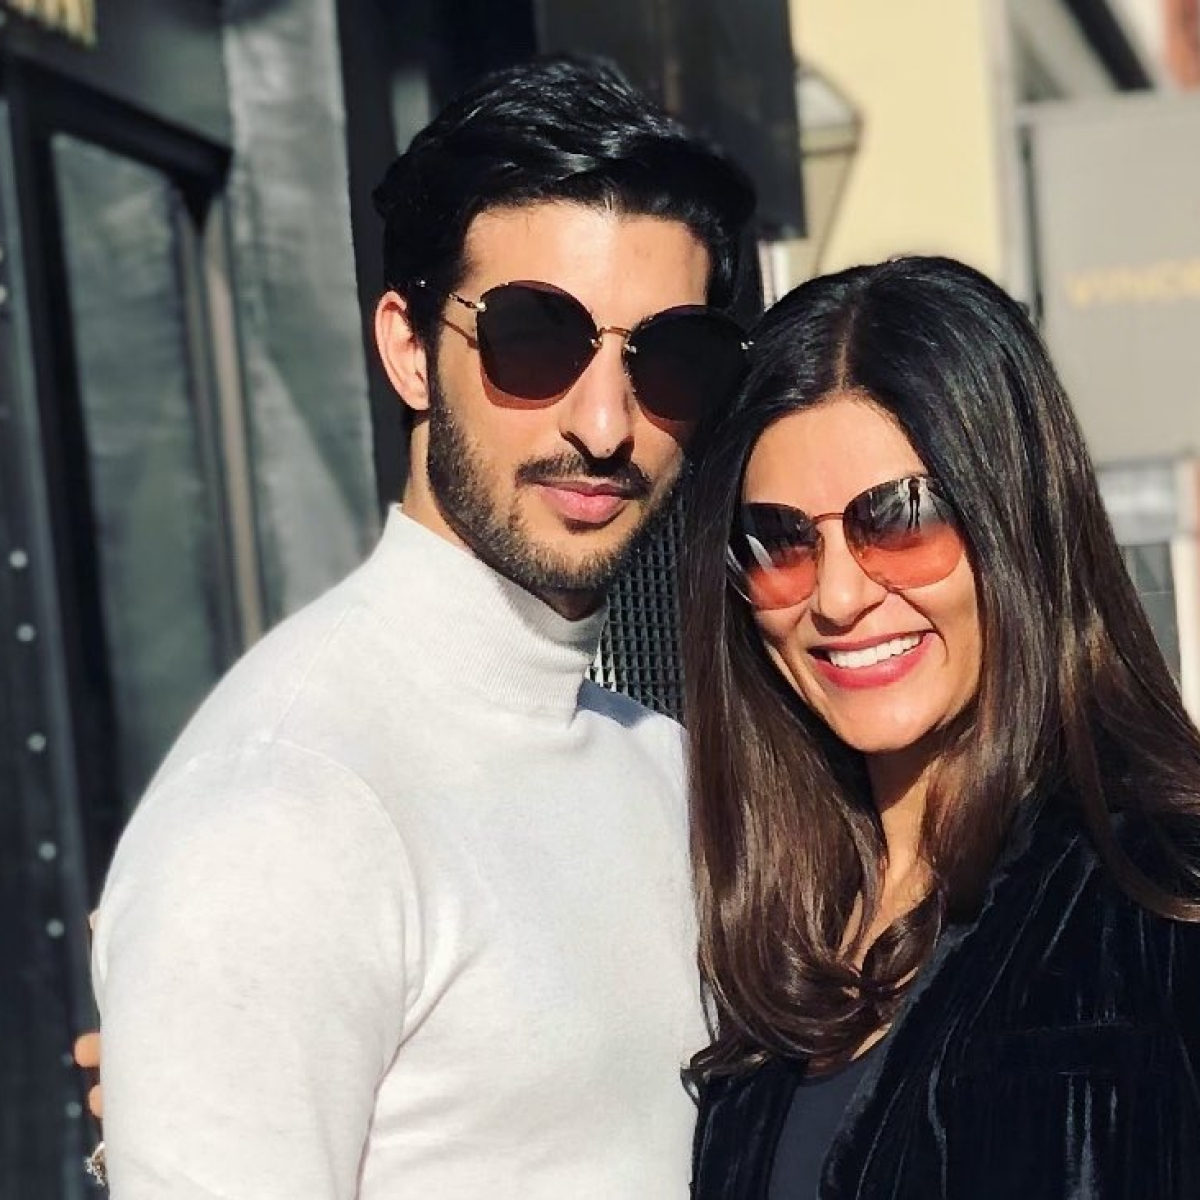 'Rooh se Rooh tak': Sushmita Sen's adorable birthday wish for beau Rohman Shawl